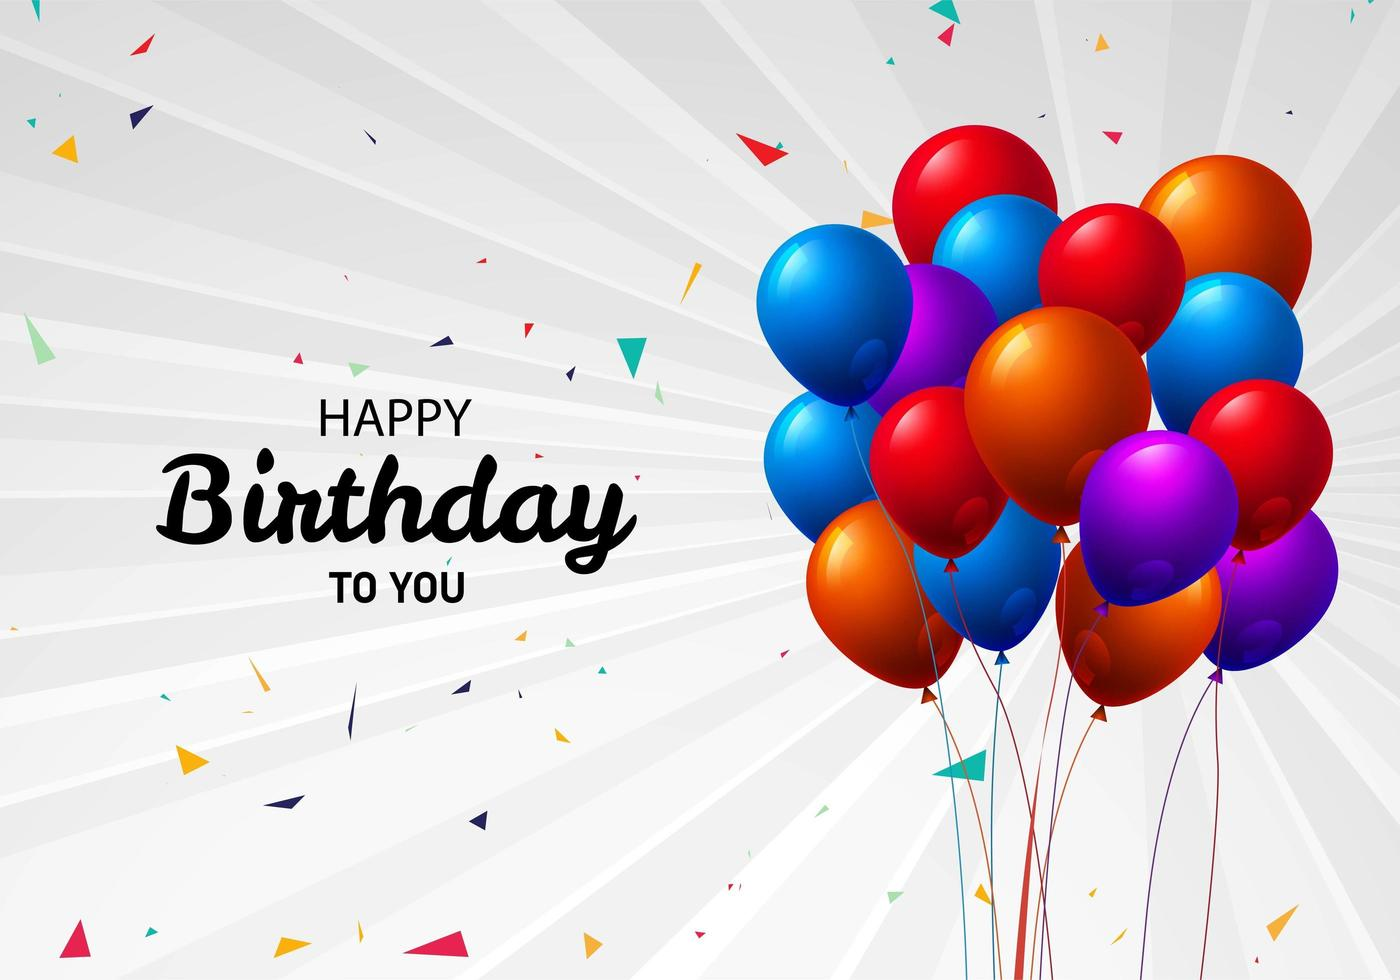 Happy Birthday to You Balloon Greeting  vector